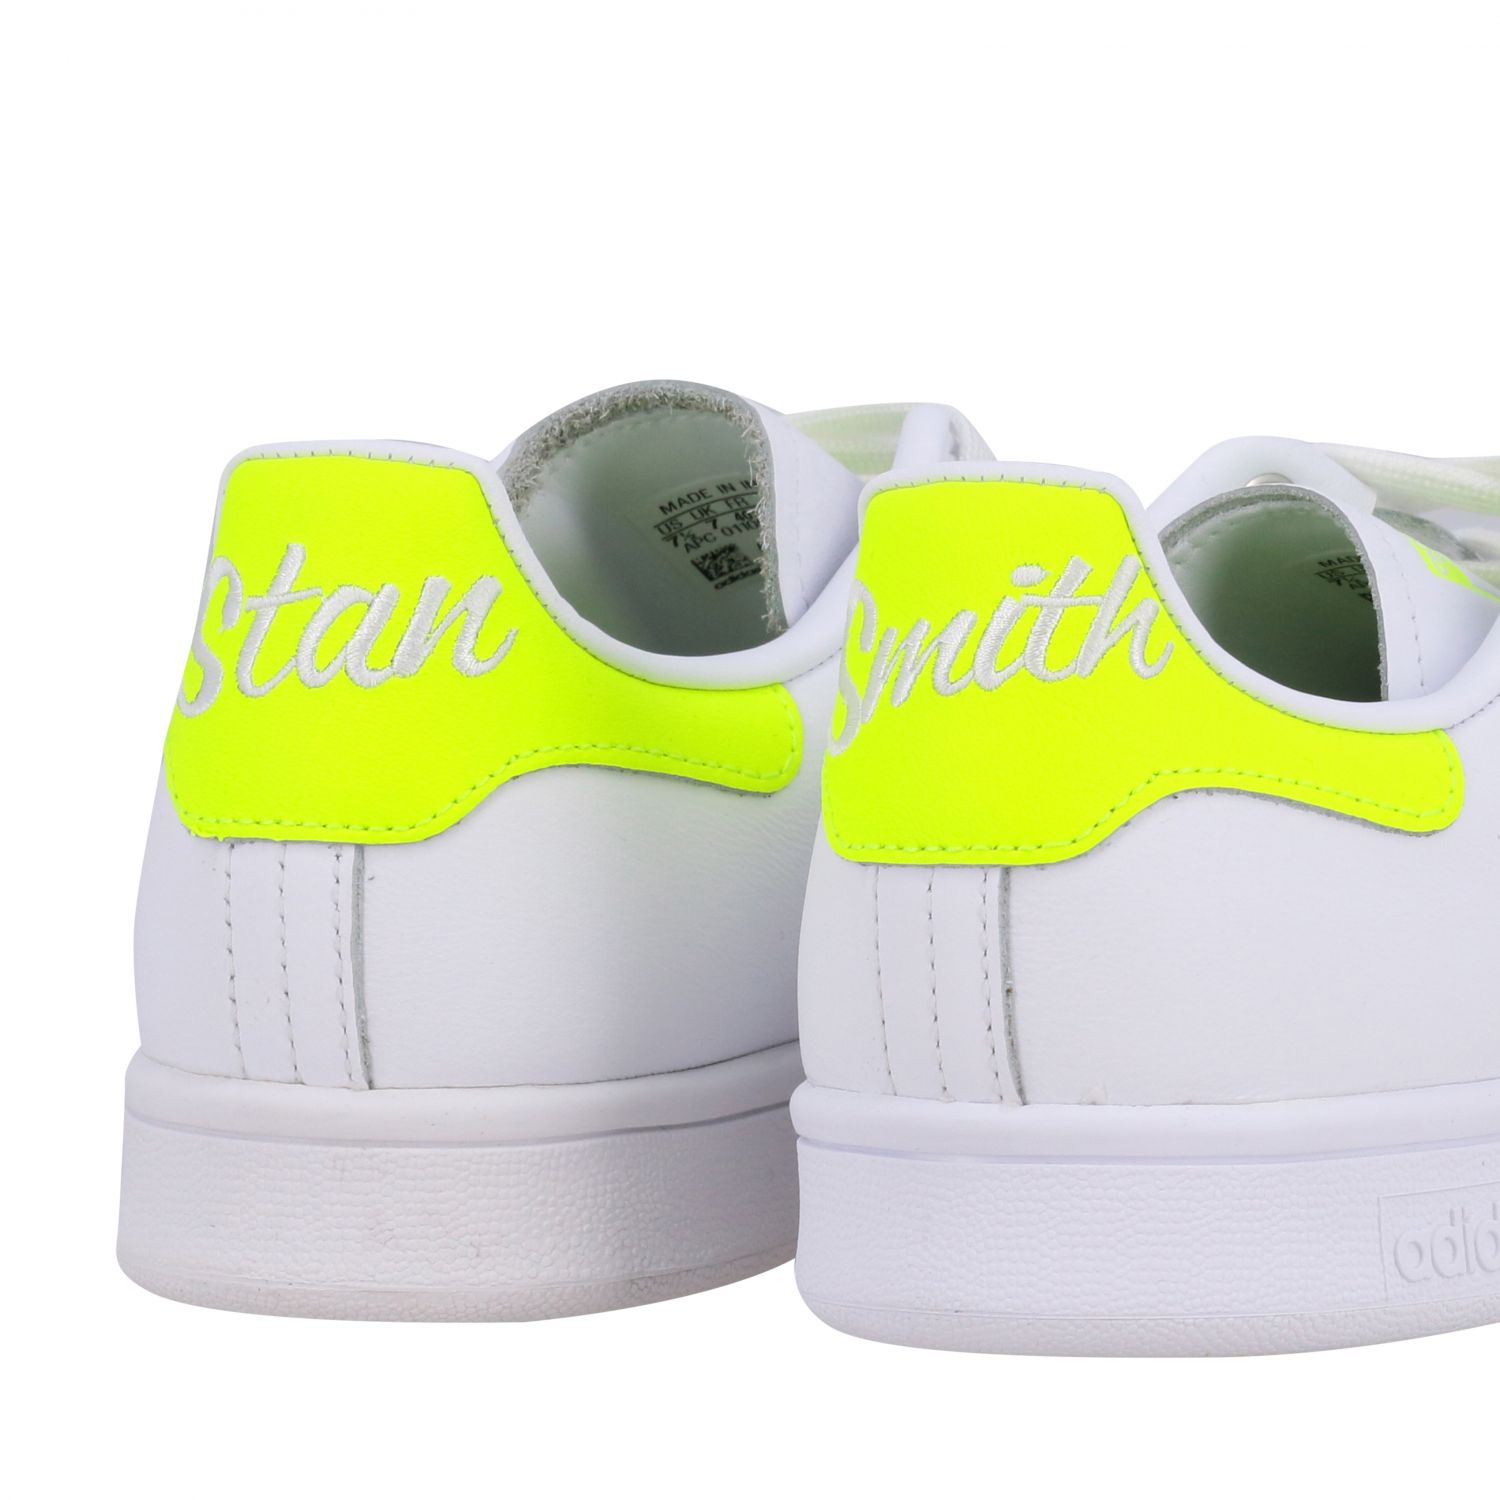 Sneakers Adidas Originals: Stan smith sneakers pelle tallone giallo ricamo bianco 5